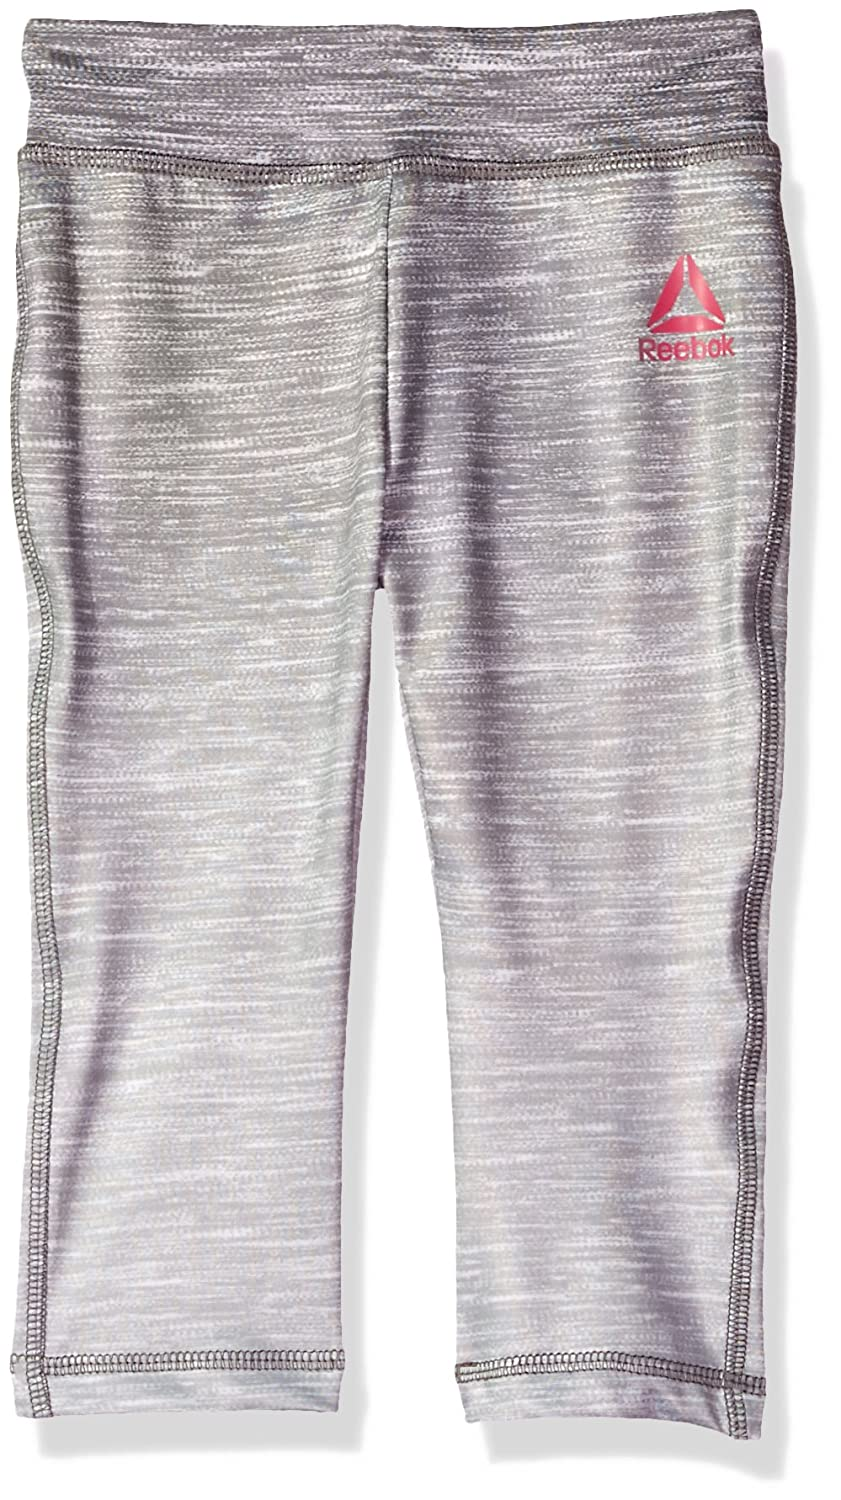 Reebok Girls Yoga Pant Yoga Pants